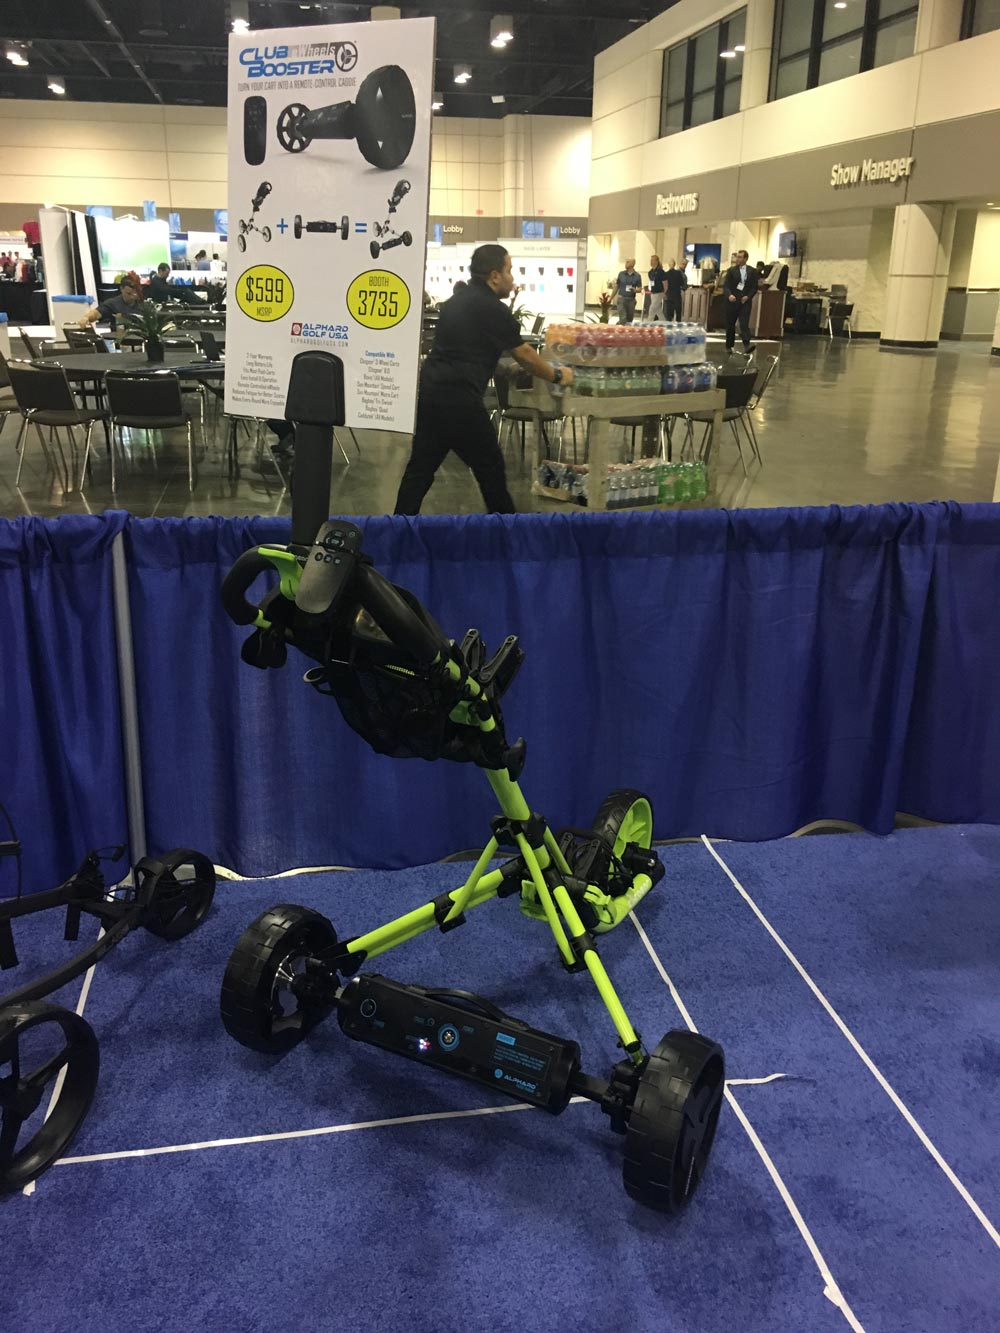 The Alphard Golf Club Booster turns your push cart into a remote control caddie! $599; alphardgolf.com